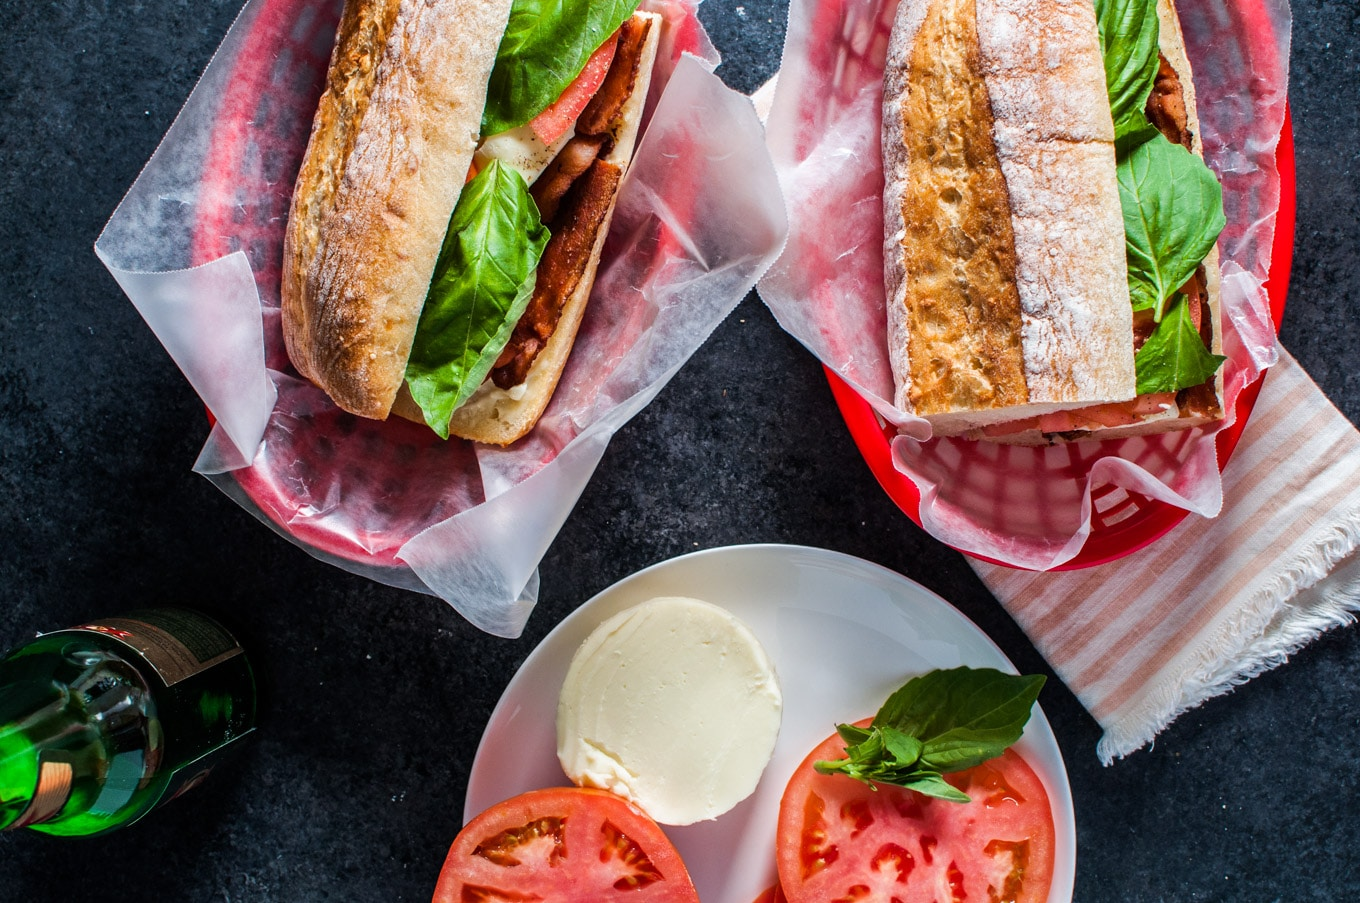 What's your favorite summer sandwich?